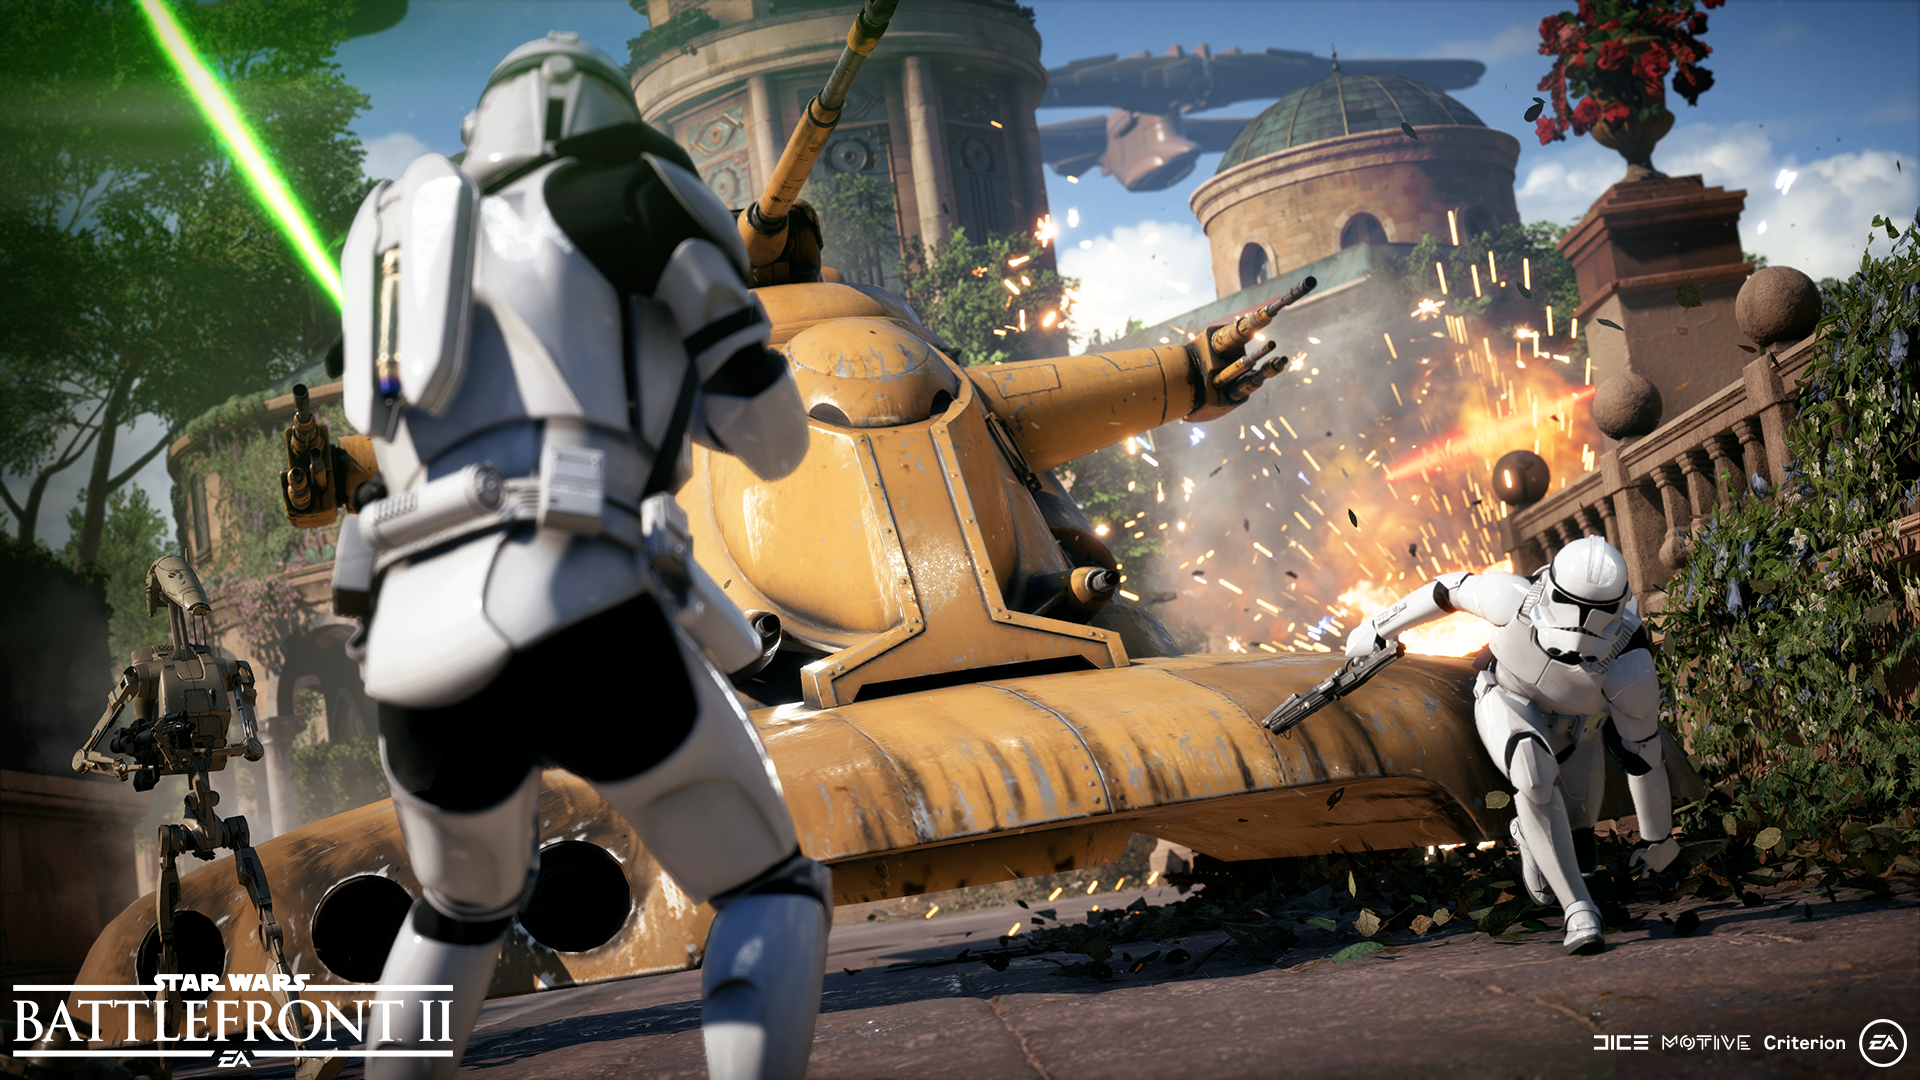 EA has listened to fans throughout the development of Star Wars Battlefront 2 – so it should fare much better than the 2015 version